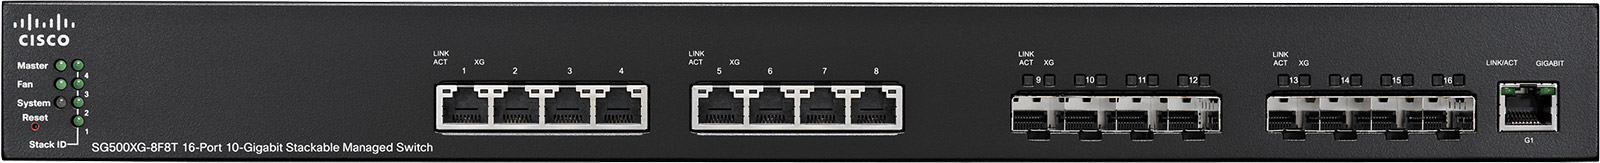 cisco-sg500xg-8f8t